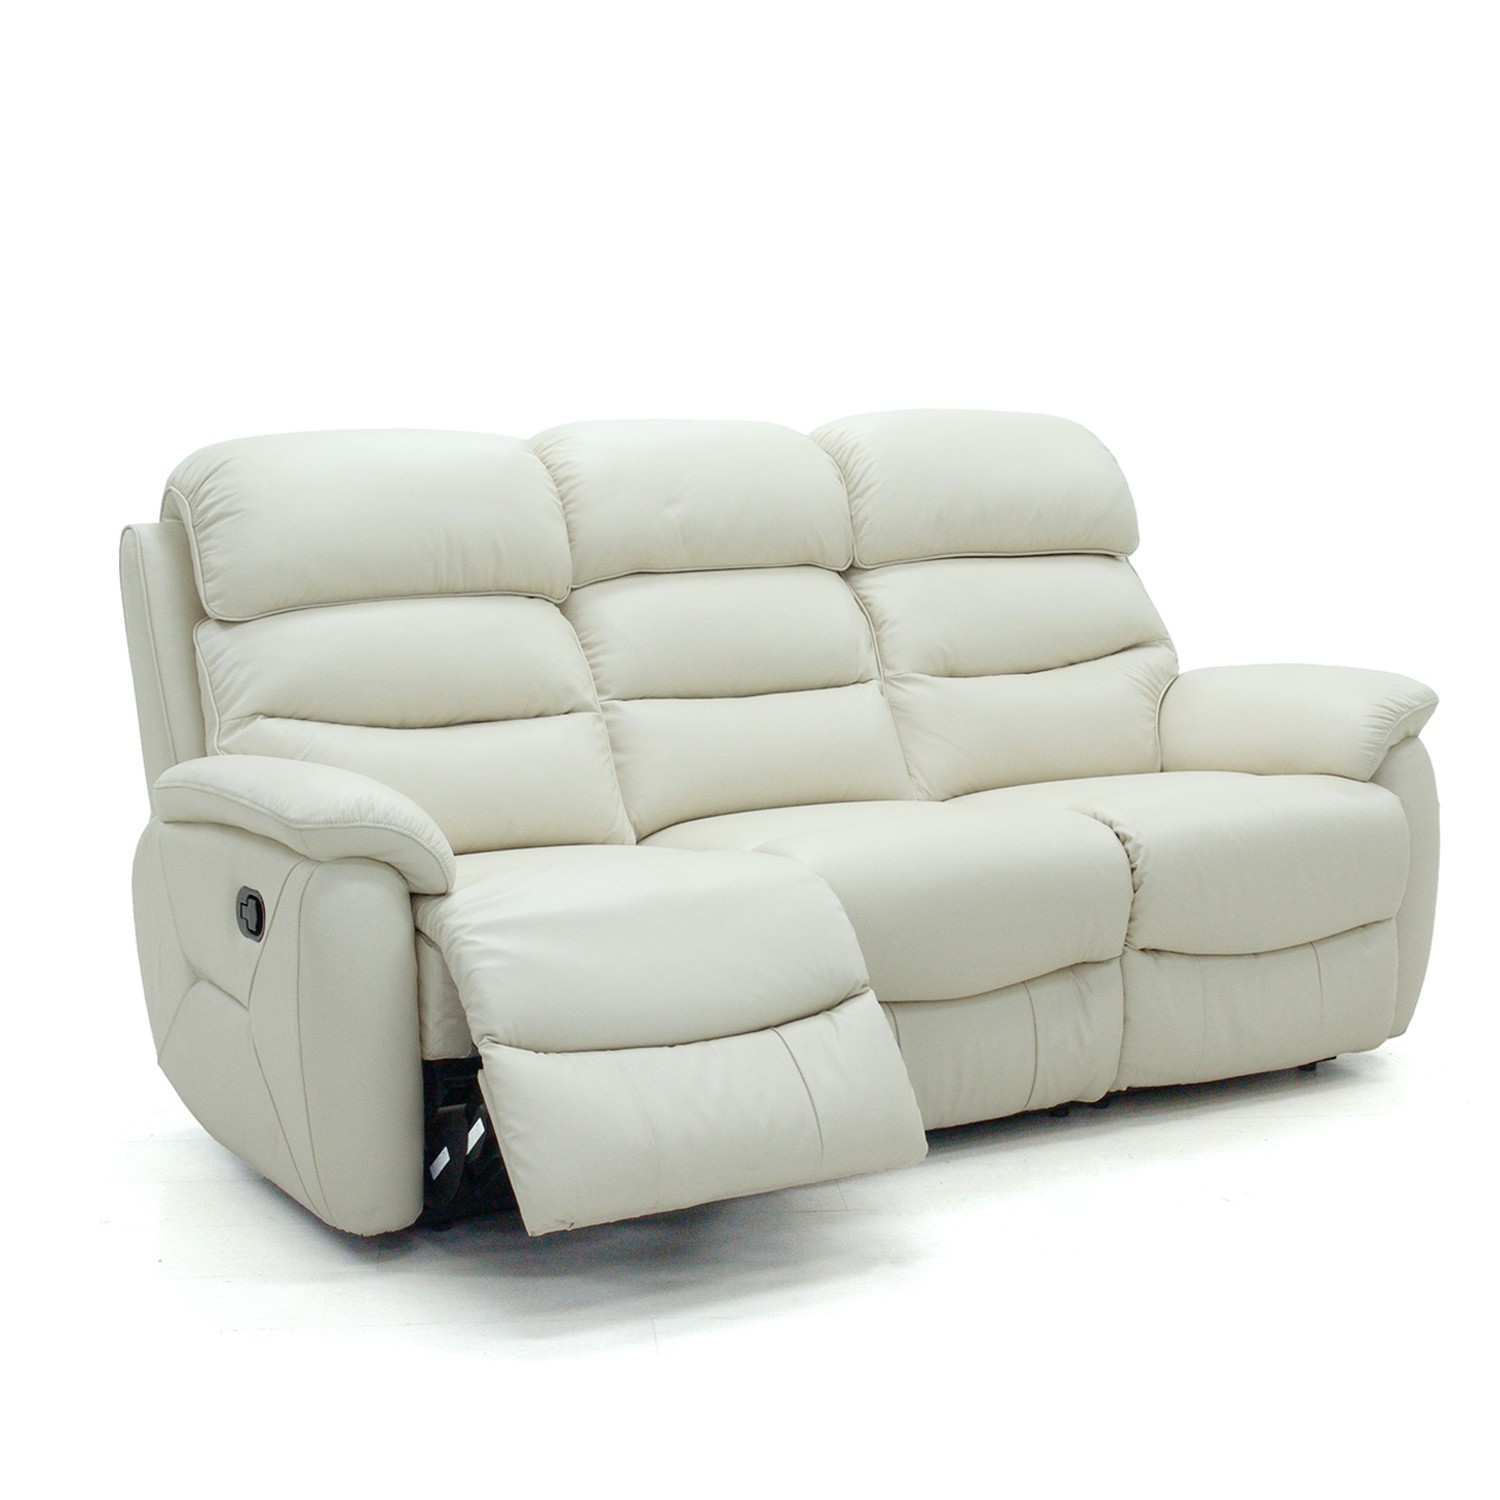 Luxury Electric Recliner Sofa Image   Modern Sofa Design Ideas | Modern Sofa  Design Ideas